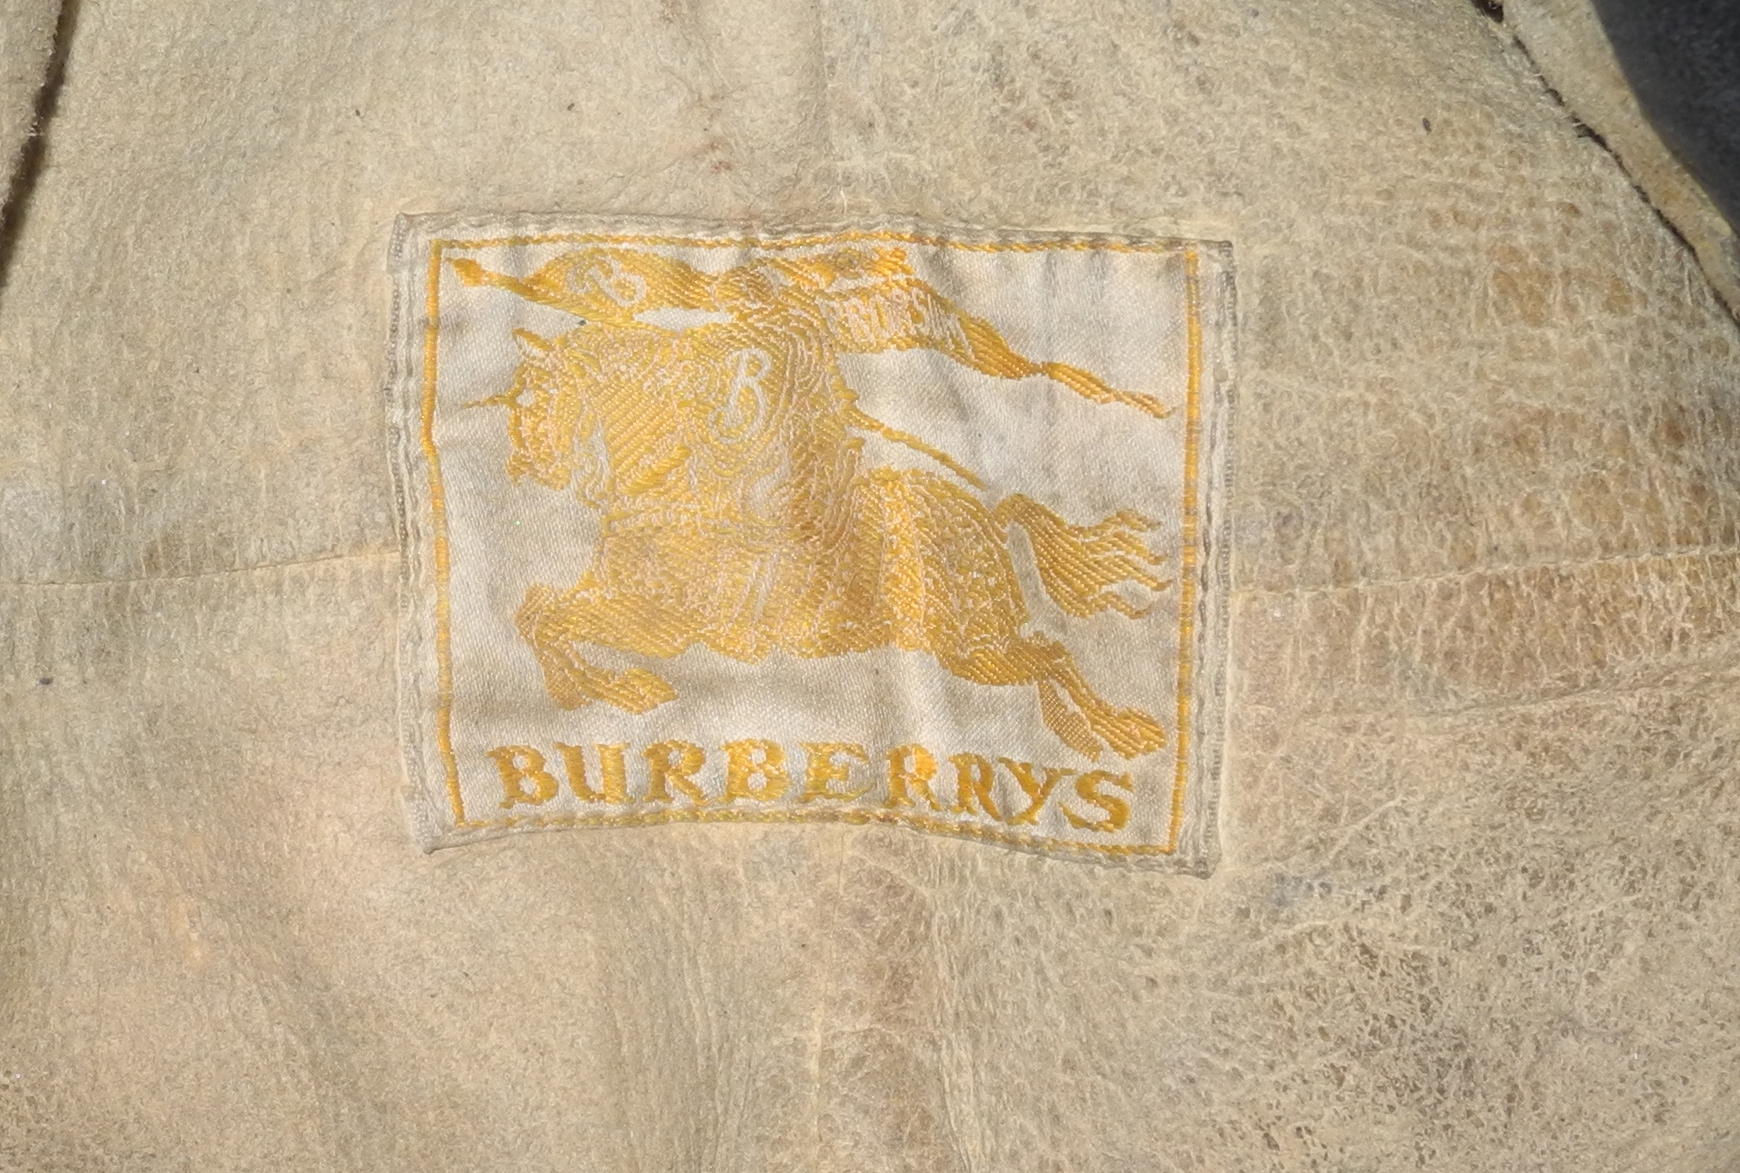 Burberry 1930s flying helmet with Gosports